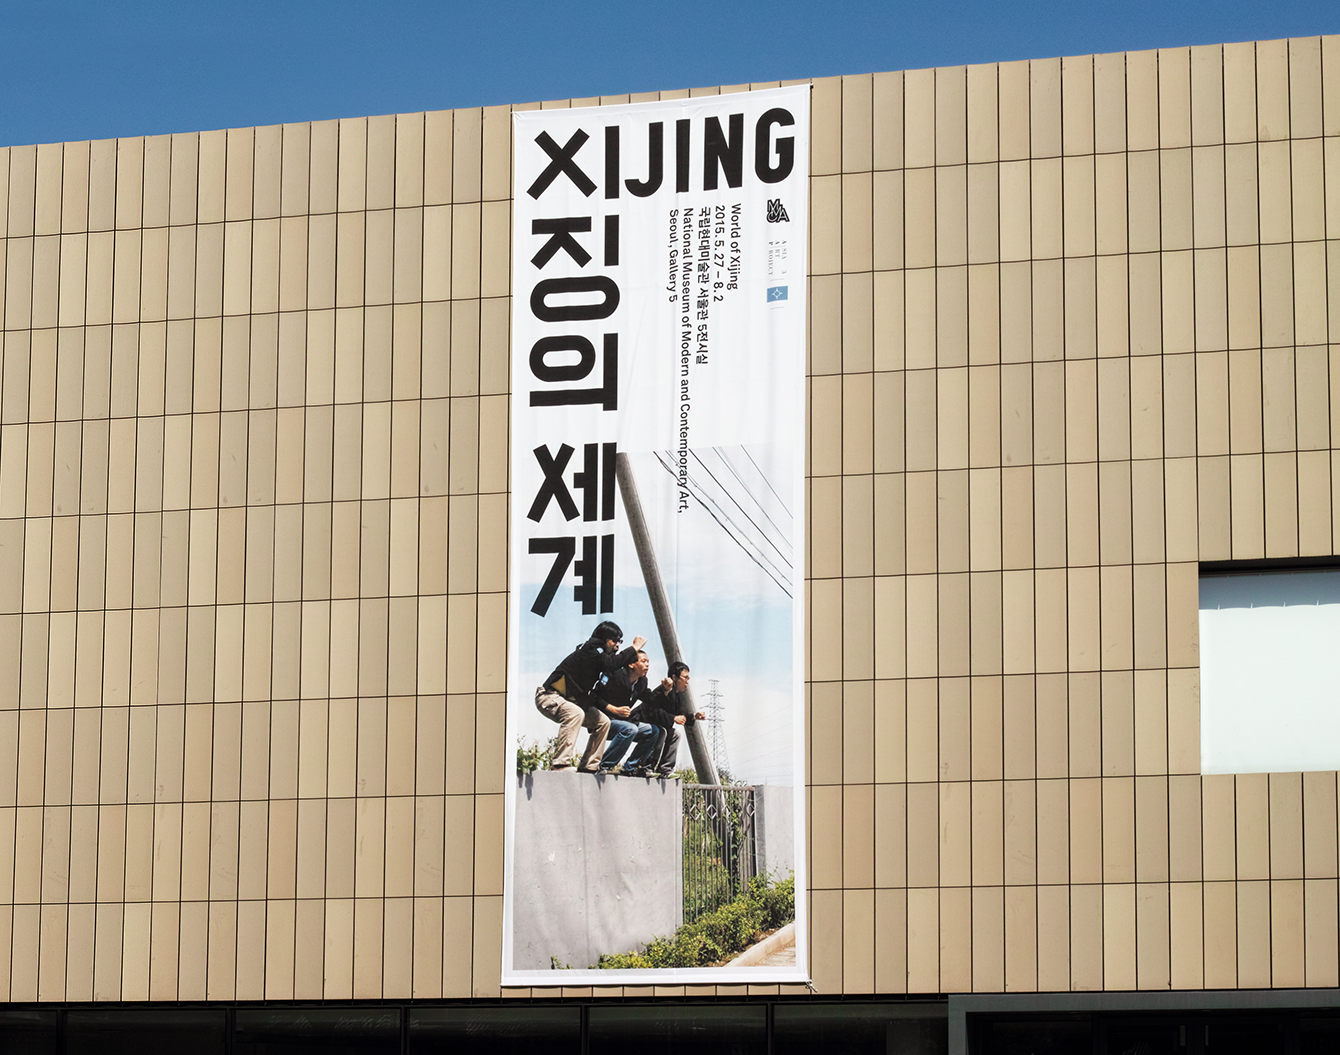 graphic design for exhibition - World of Xijing - Jaemin Lee